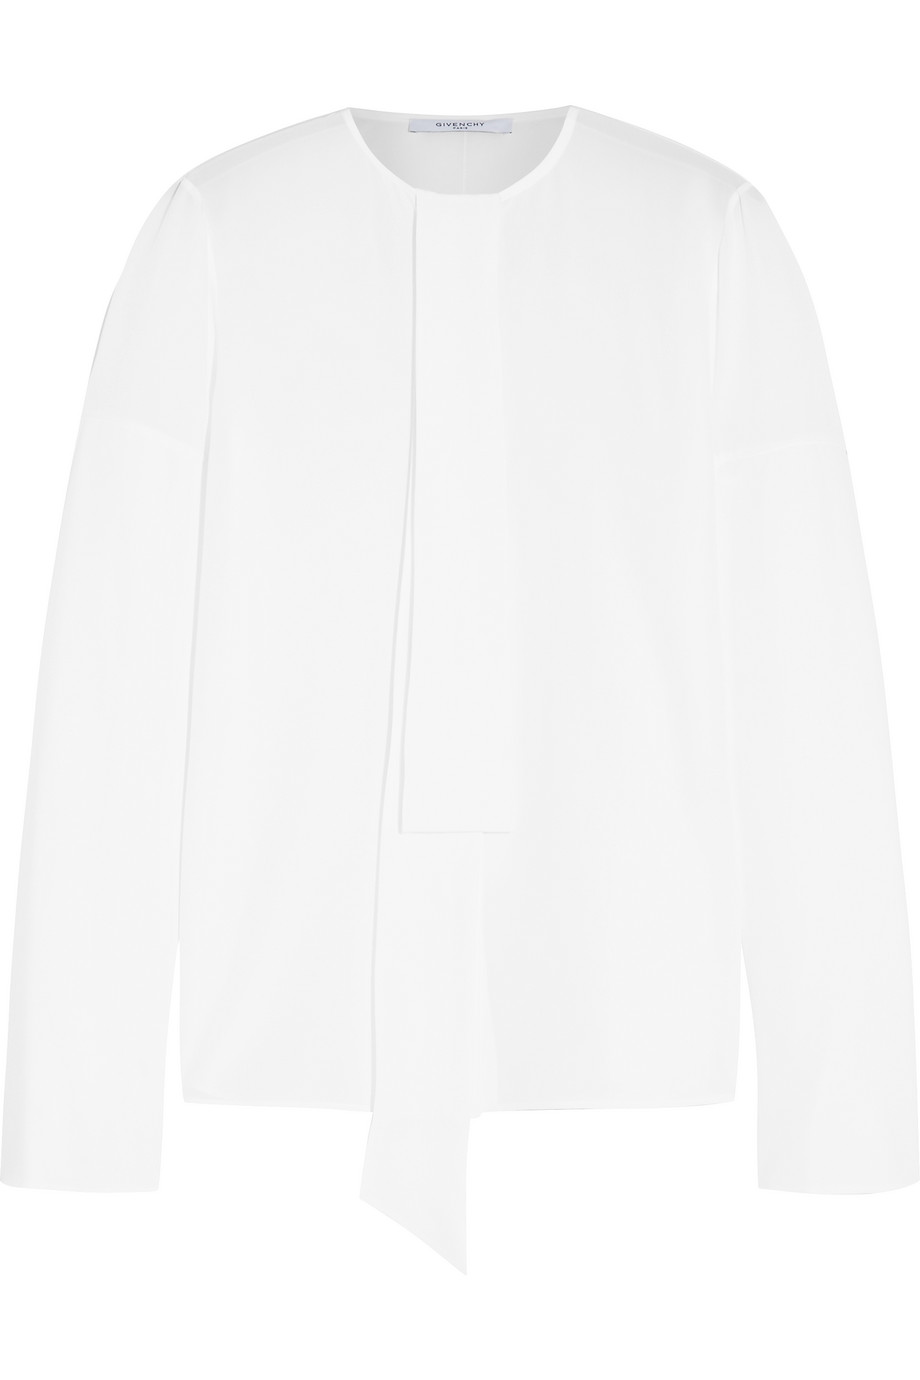 Givenchy Pussy-Bow Blouse in White Silk Crepe De Chine, Women's, Size: 40